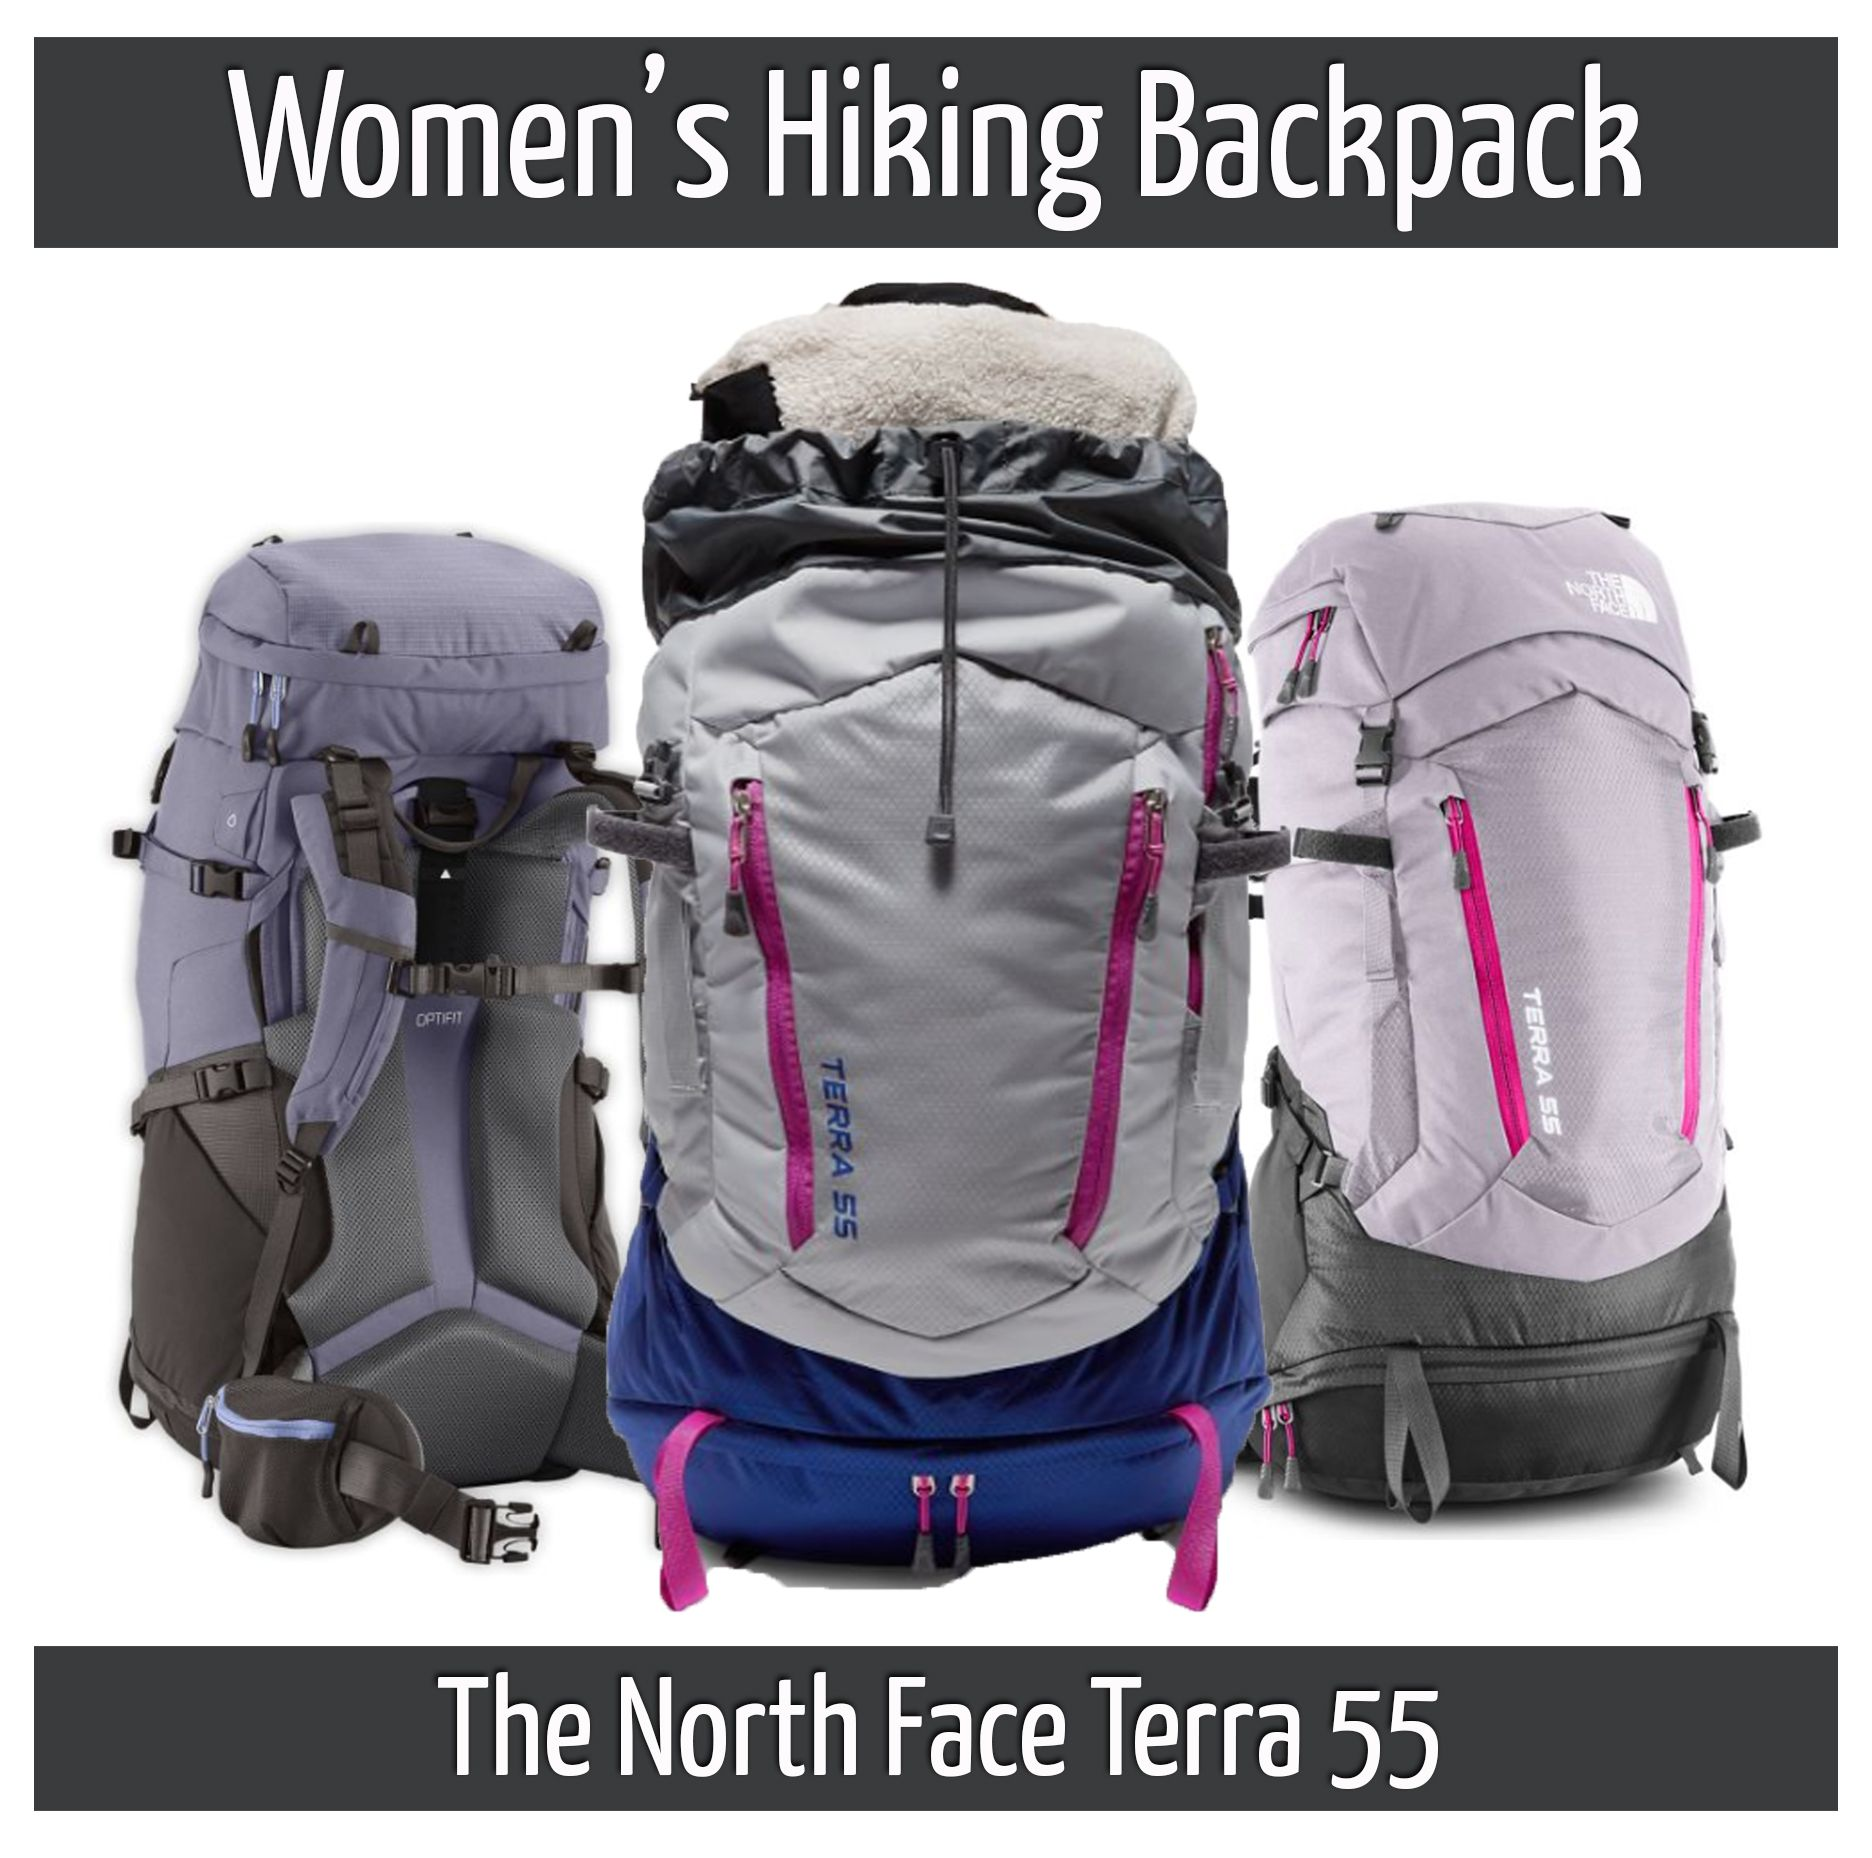 45660df30 The North Face Terra 55. #hiking #backpacking #camping   Hiking ...